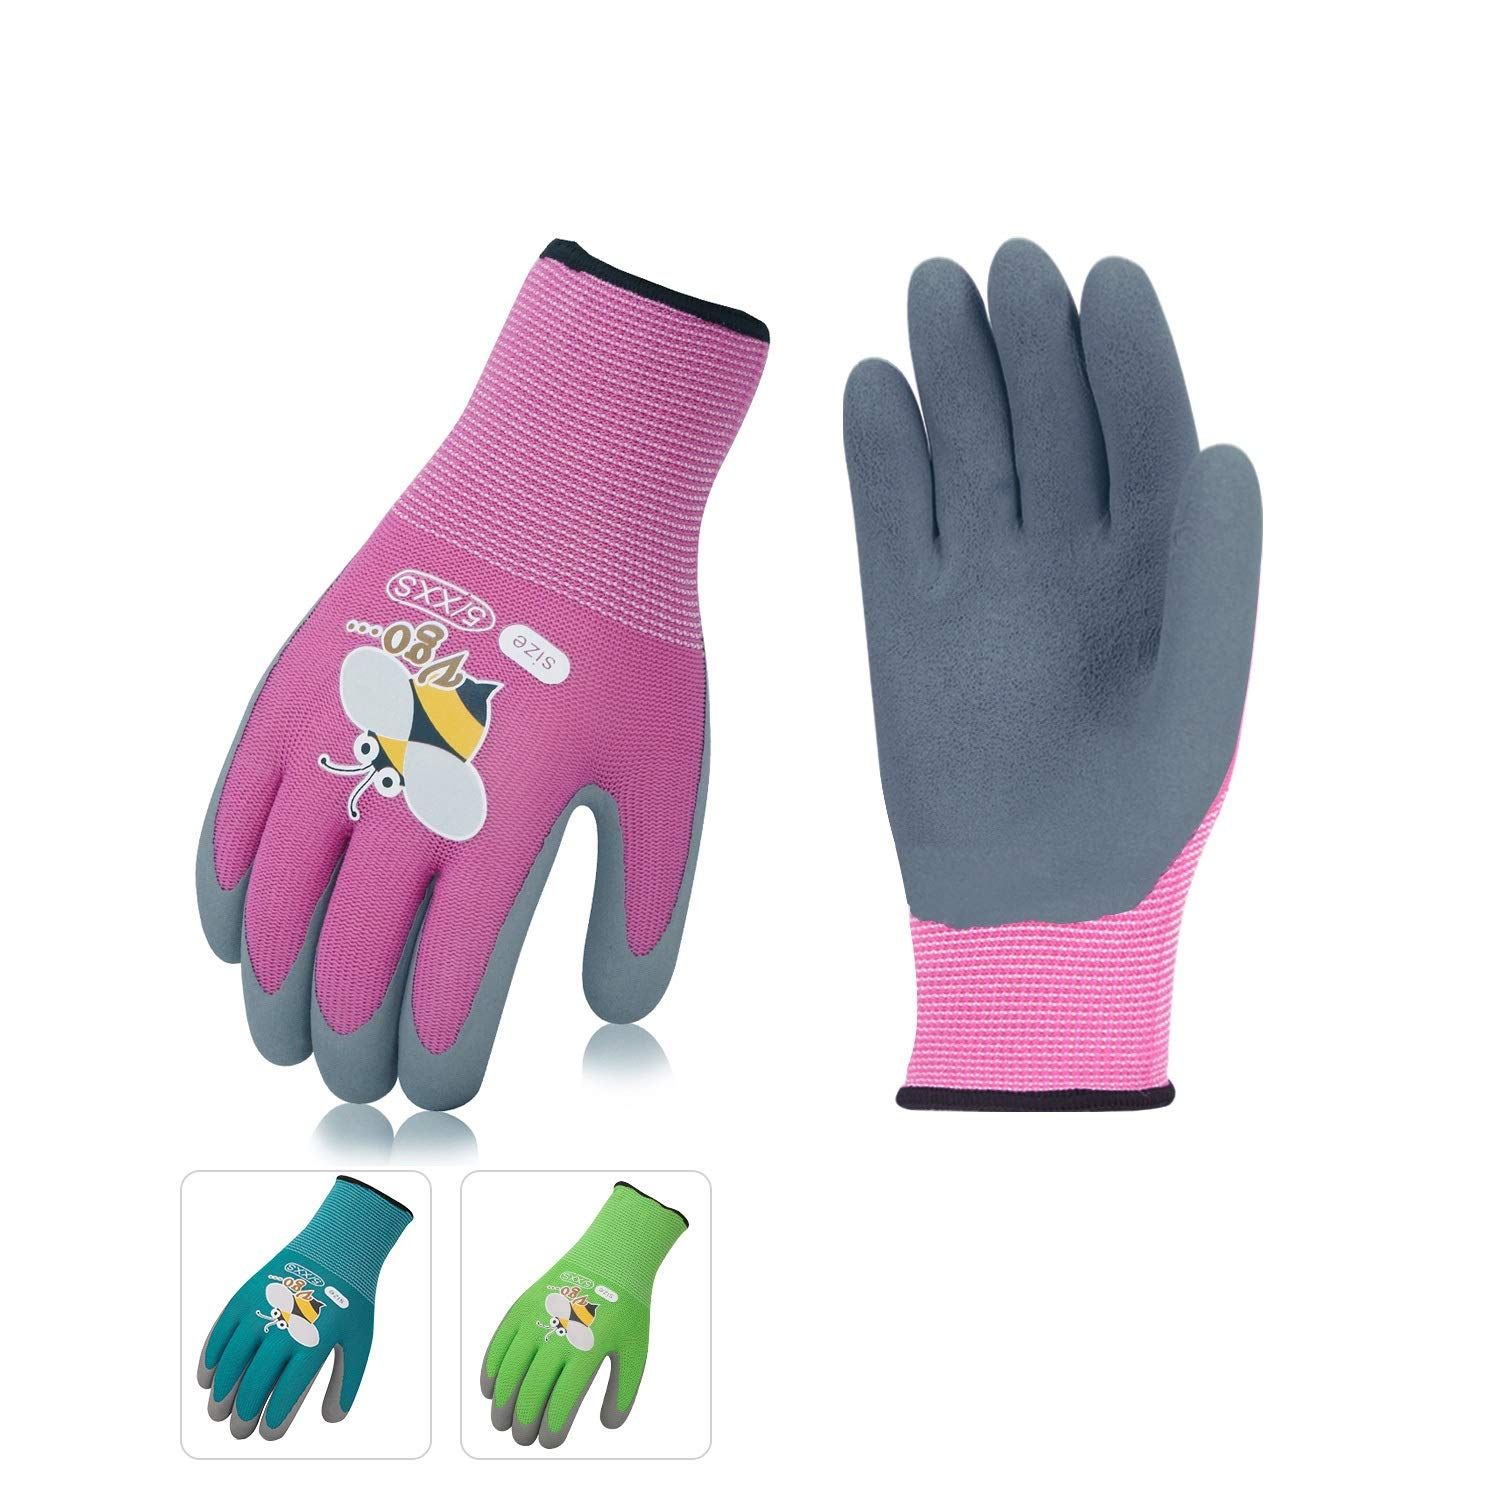 Vgo 3 Pairs Age 3-5 Kids Multicolored Garden Gloves, Foam Rubber Coated Garden and Work Gloves (Size 5/XXS for Age 3-5, Blue & Green & Pink, KID-RB6013) Laborsing Safety Products Inc.